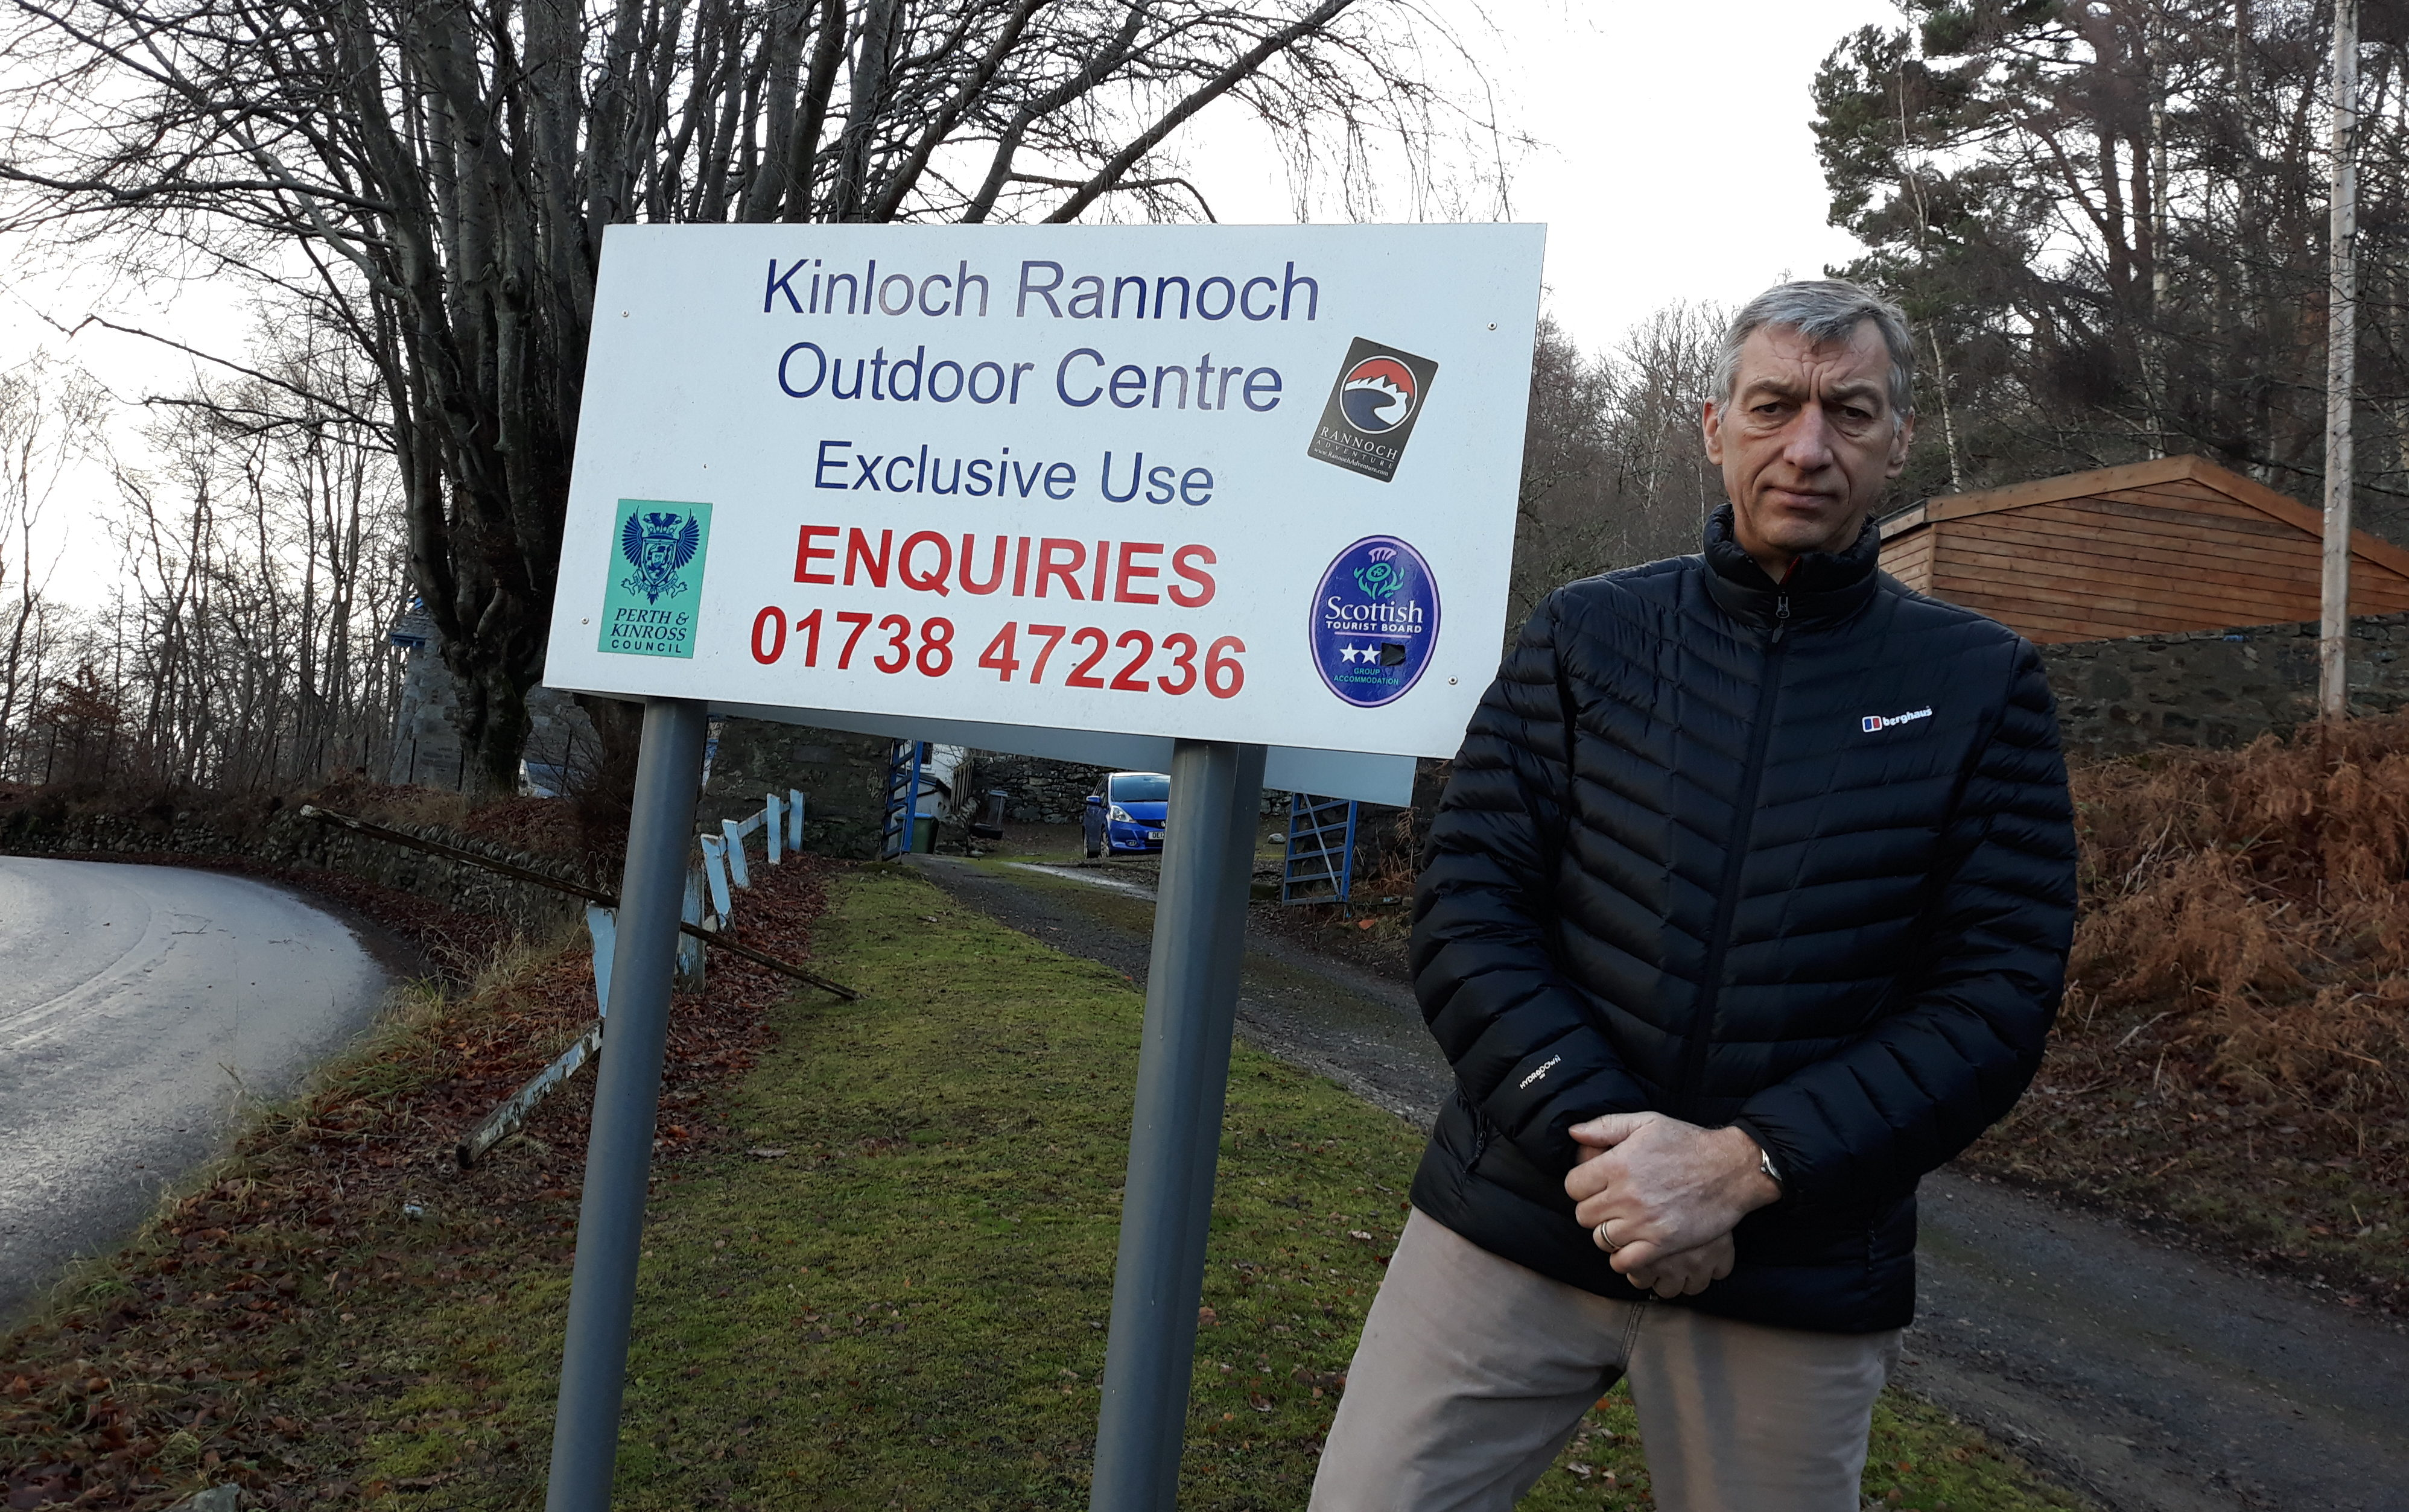 Councillor Mike Williamson at the Kinloch Rannoch Outreach Centre